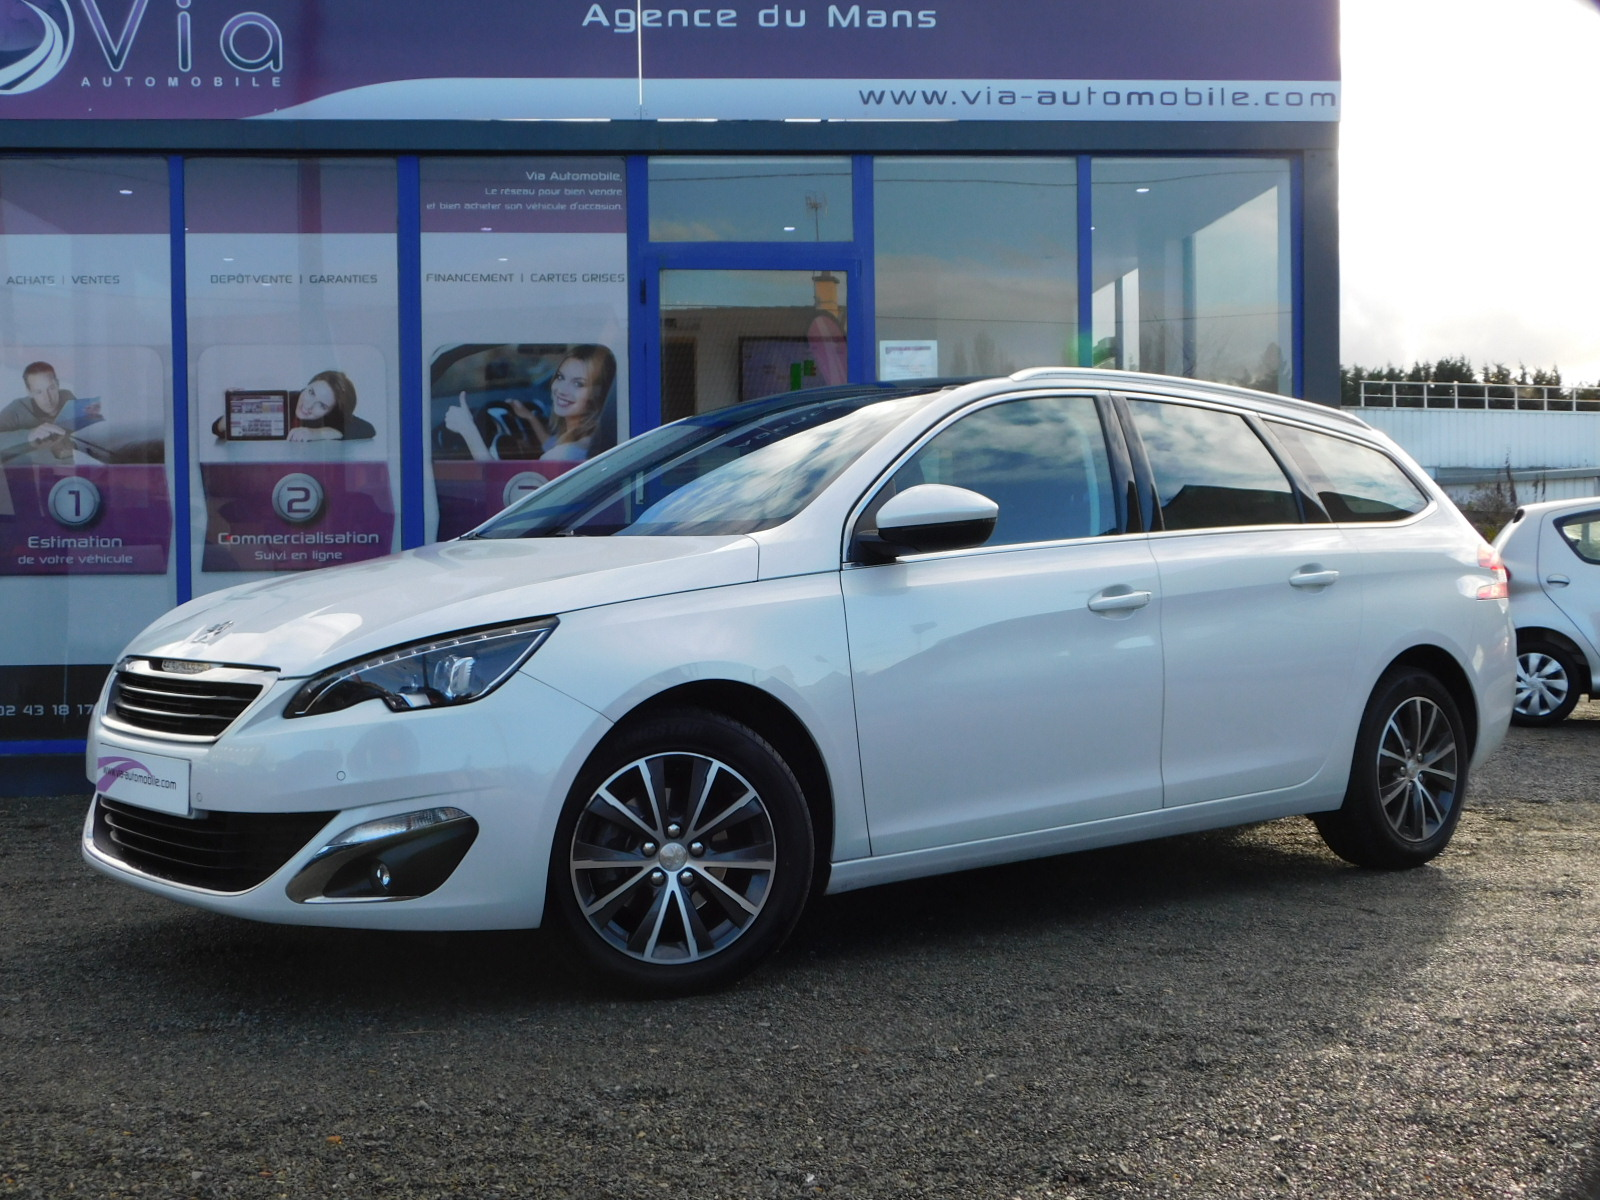 voiture peugeot 308 sw 1 6 120ch allure pano cam ra occasion diesel 2016 47450 km 16890. Black Bedroom Furniture Sets. Home Design Ideas